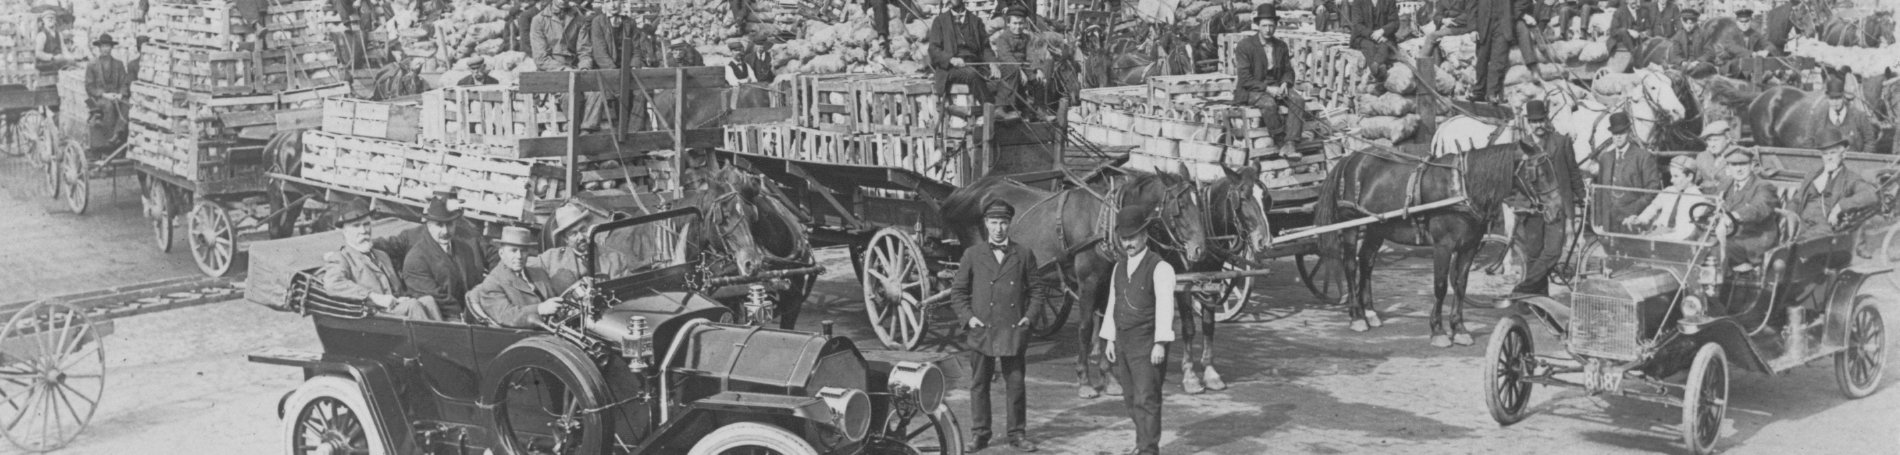 Photo of crowd of wagons and horses from Archives.